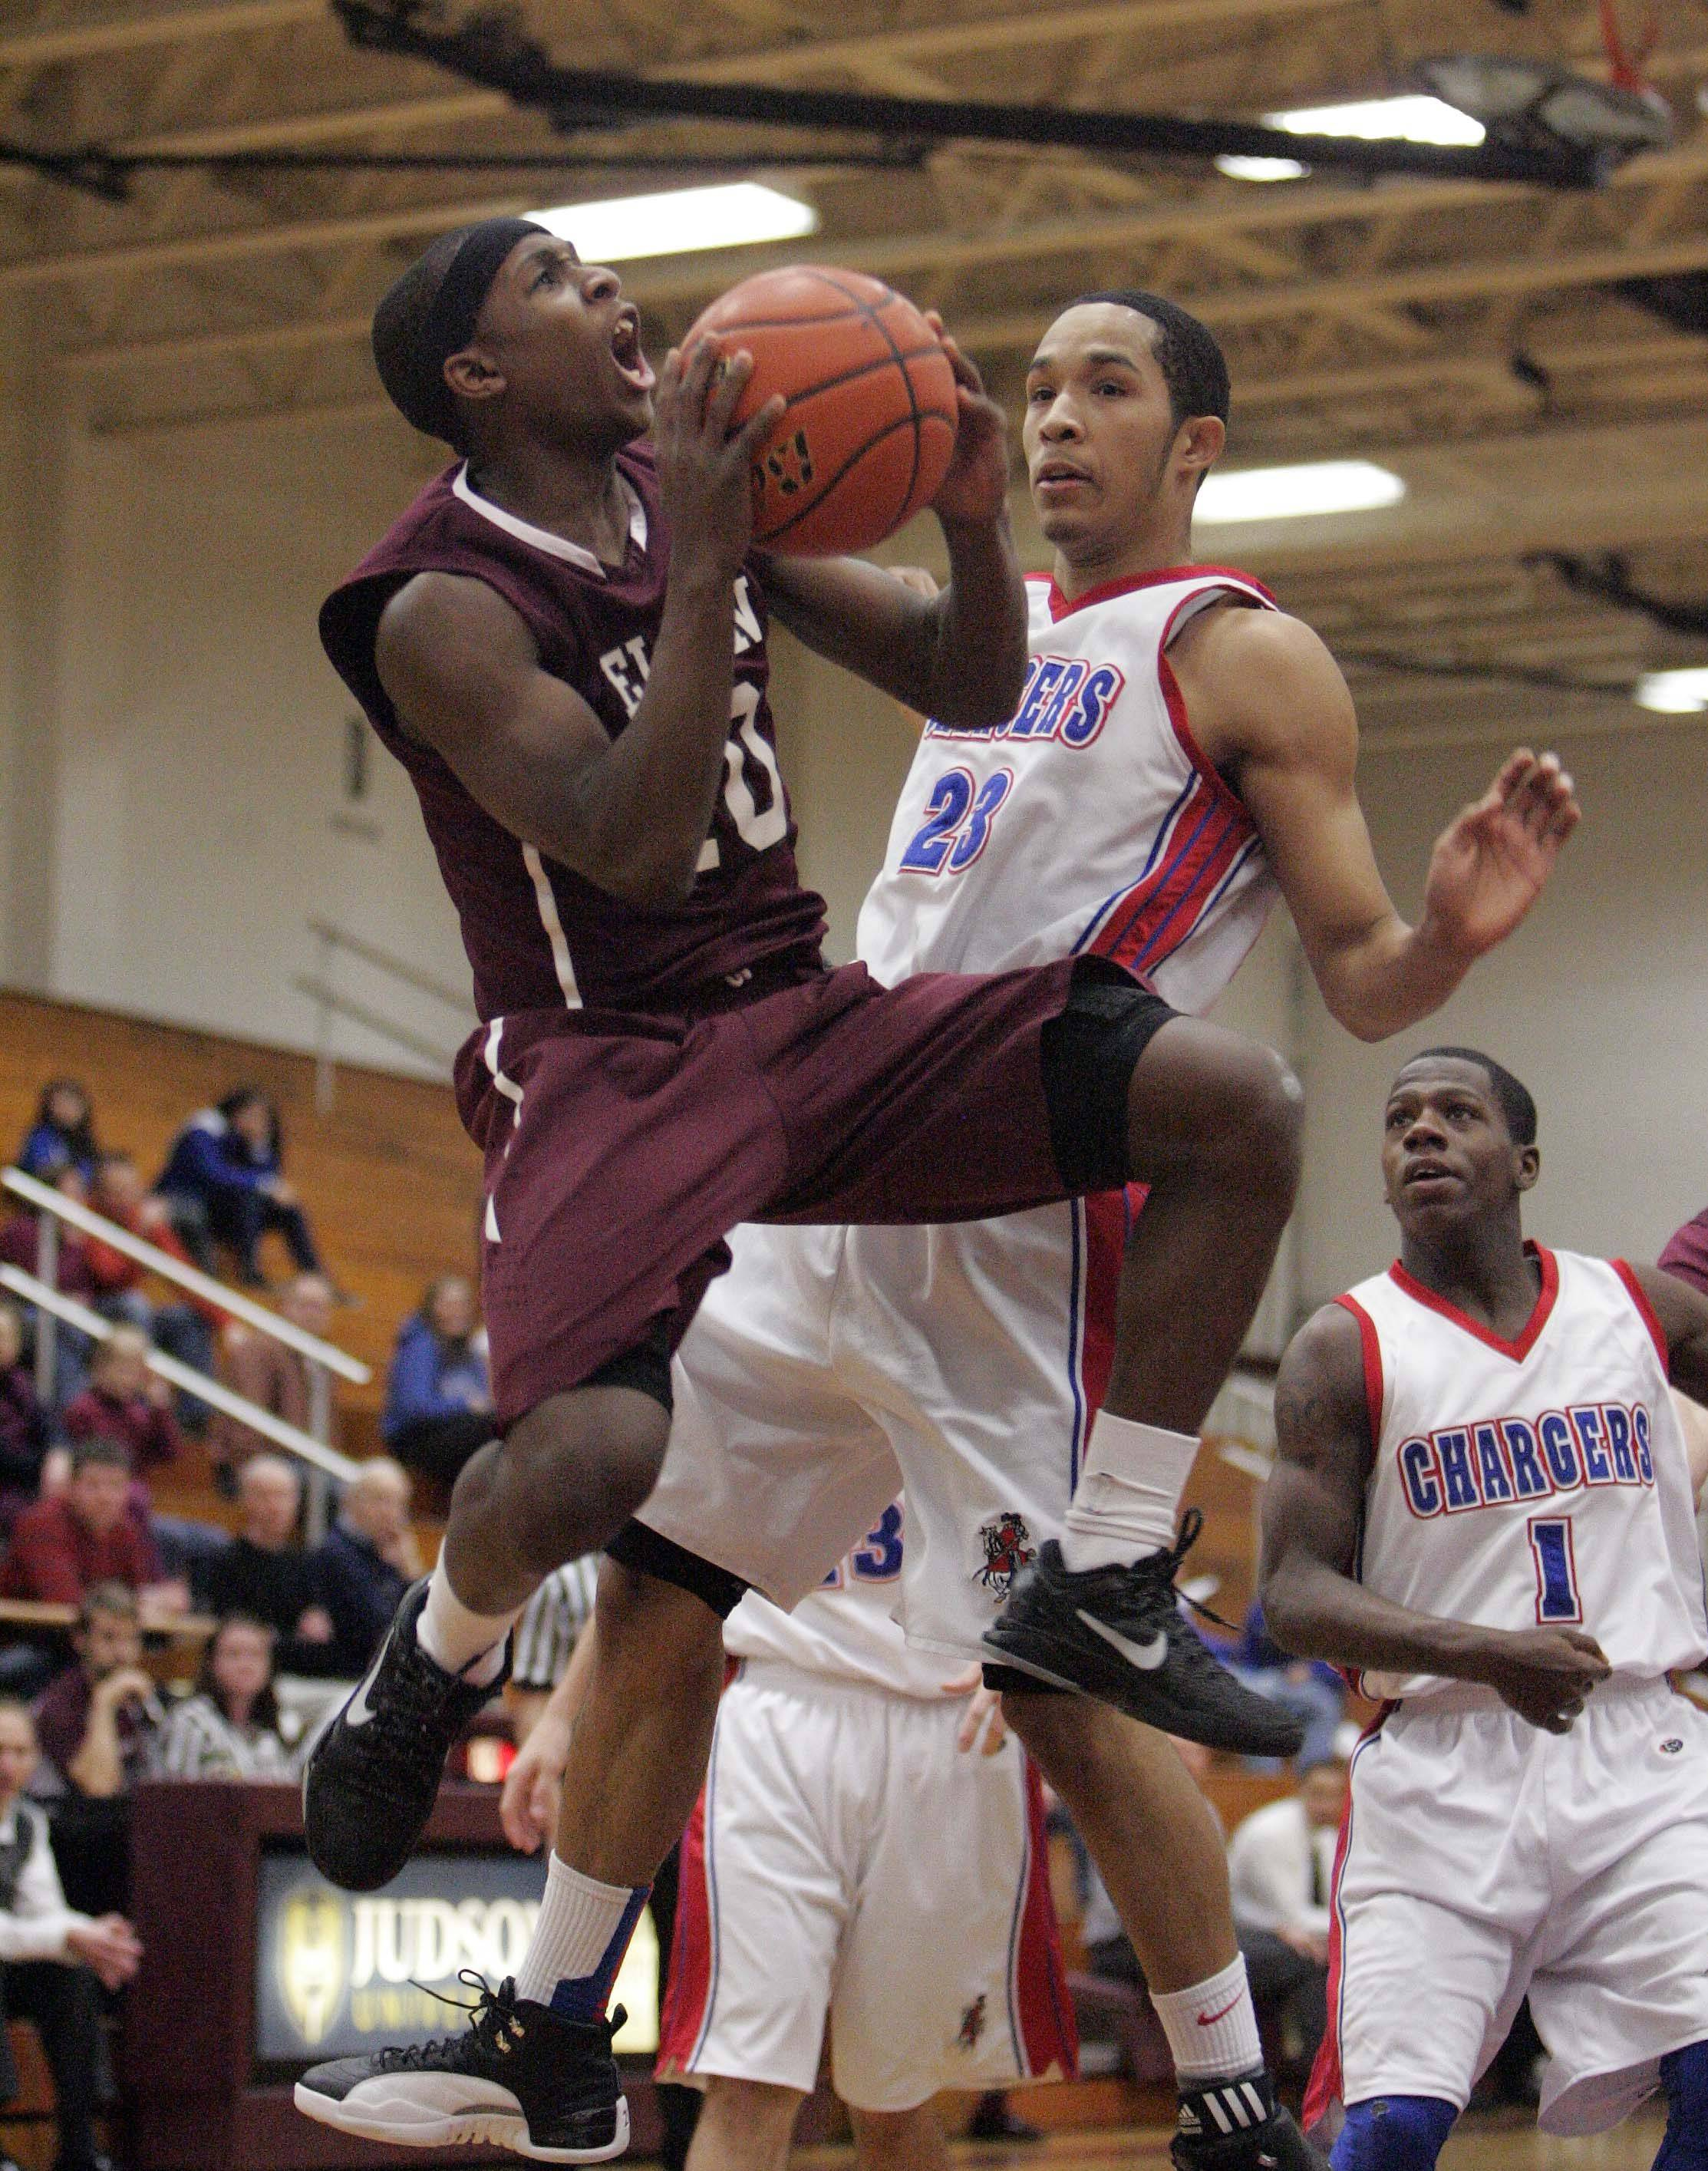 Elgin senior Arie Williams puts up a shot that would score the 1,000th point of his career during the Maroons' 53-52 win over Dundee-Crown at the Elgin Holiday Tournament Thursday night. Defending is Dundee-Crown's Cordero Parson (21).